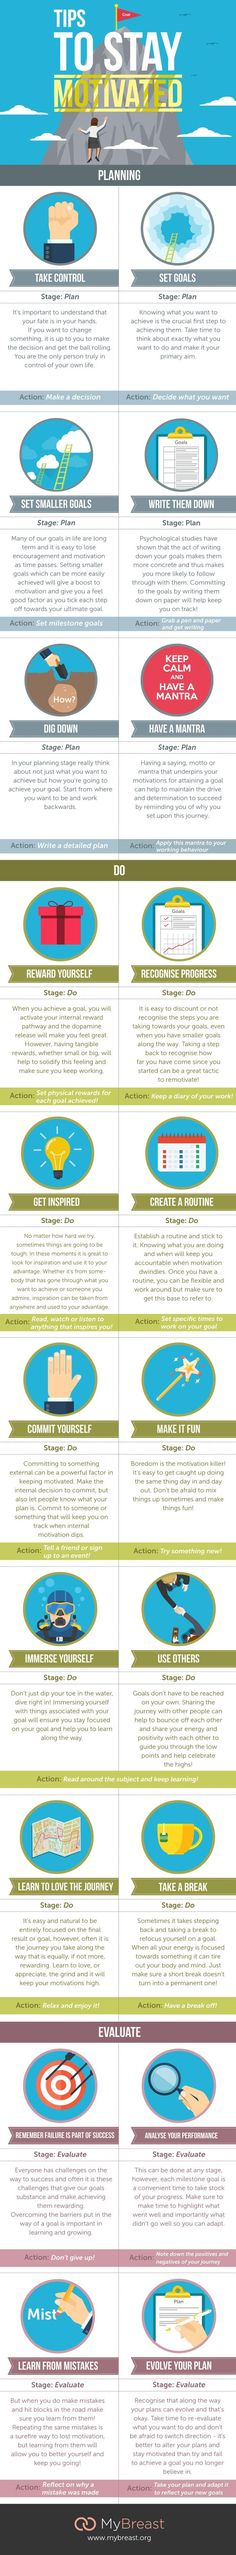 Tips To Stay Motivated #Infographic #Motivation